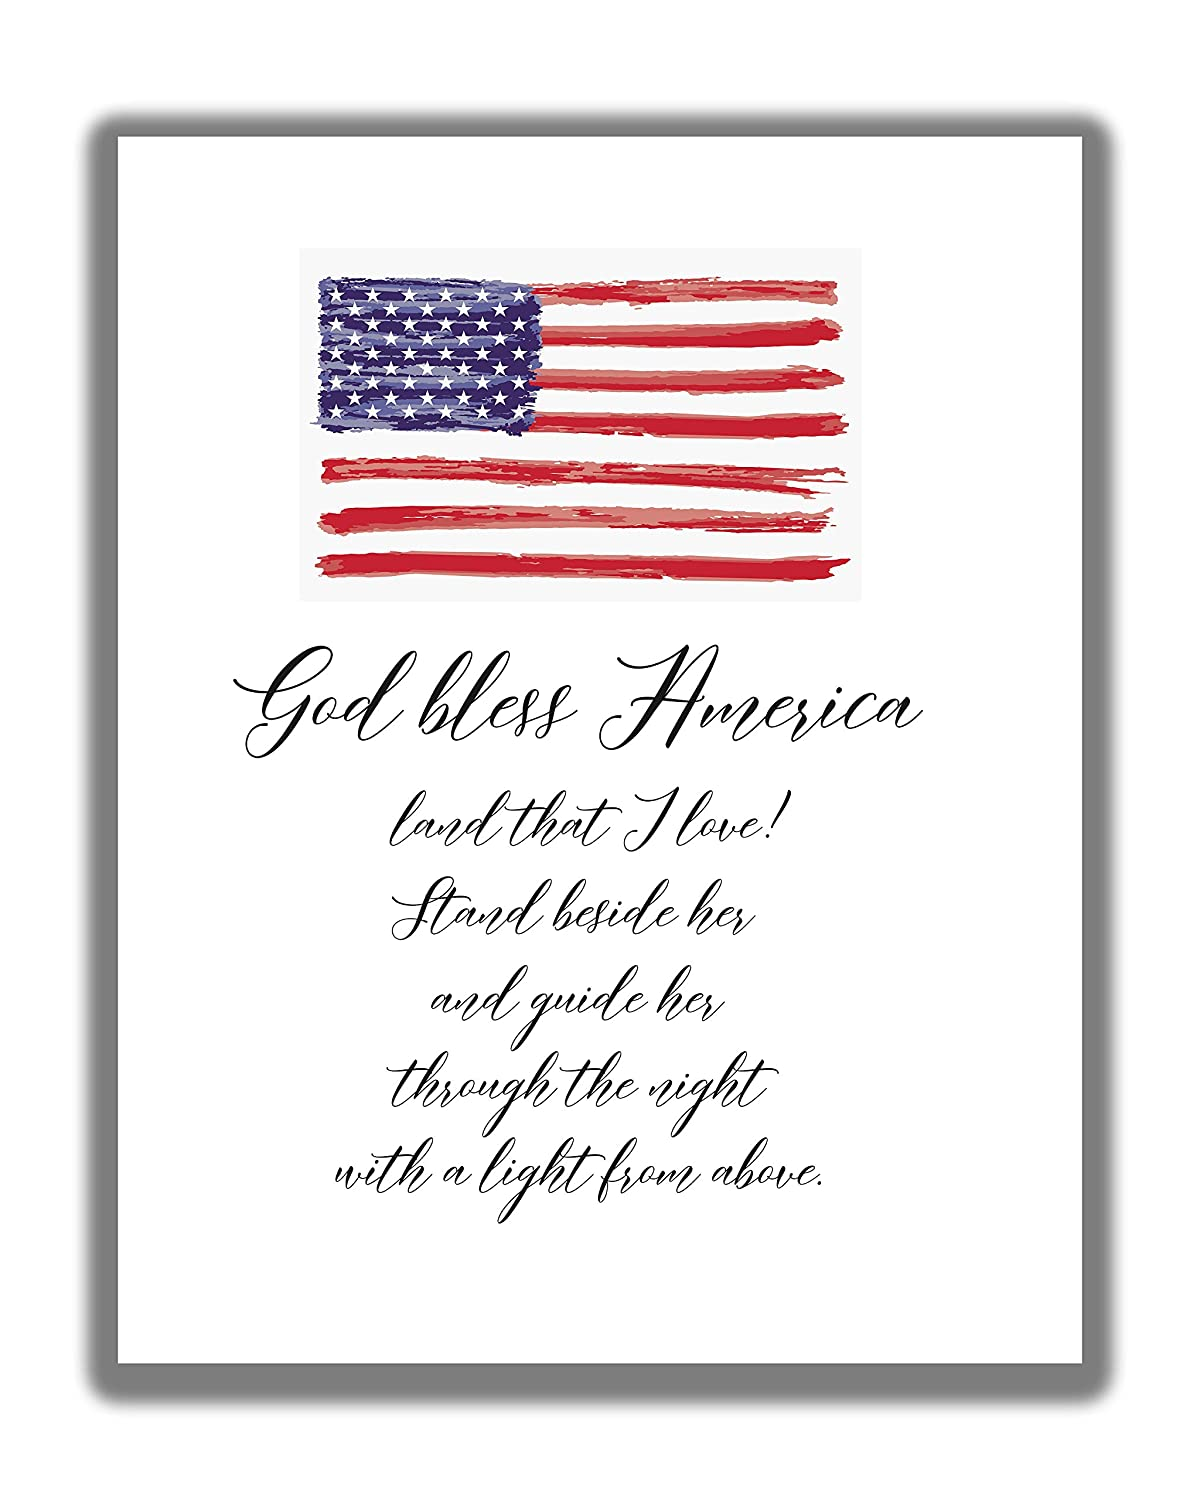 Amazon Com Patriotic Inspirational God Bless America Land That I Love Typography Word Wall Art 11x14 Unframed Print Makes A Great Decor Gift For Any Patriot Handmade